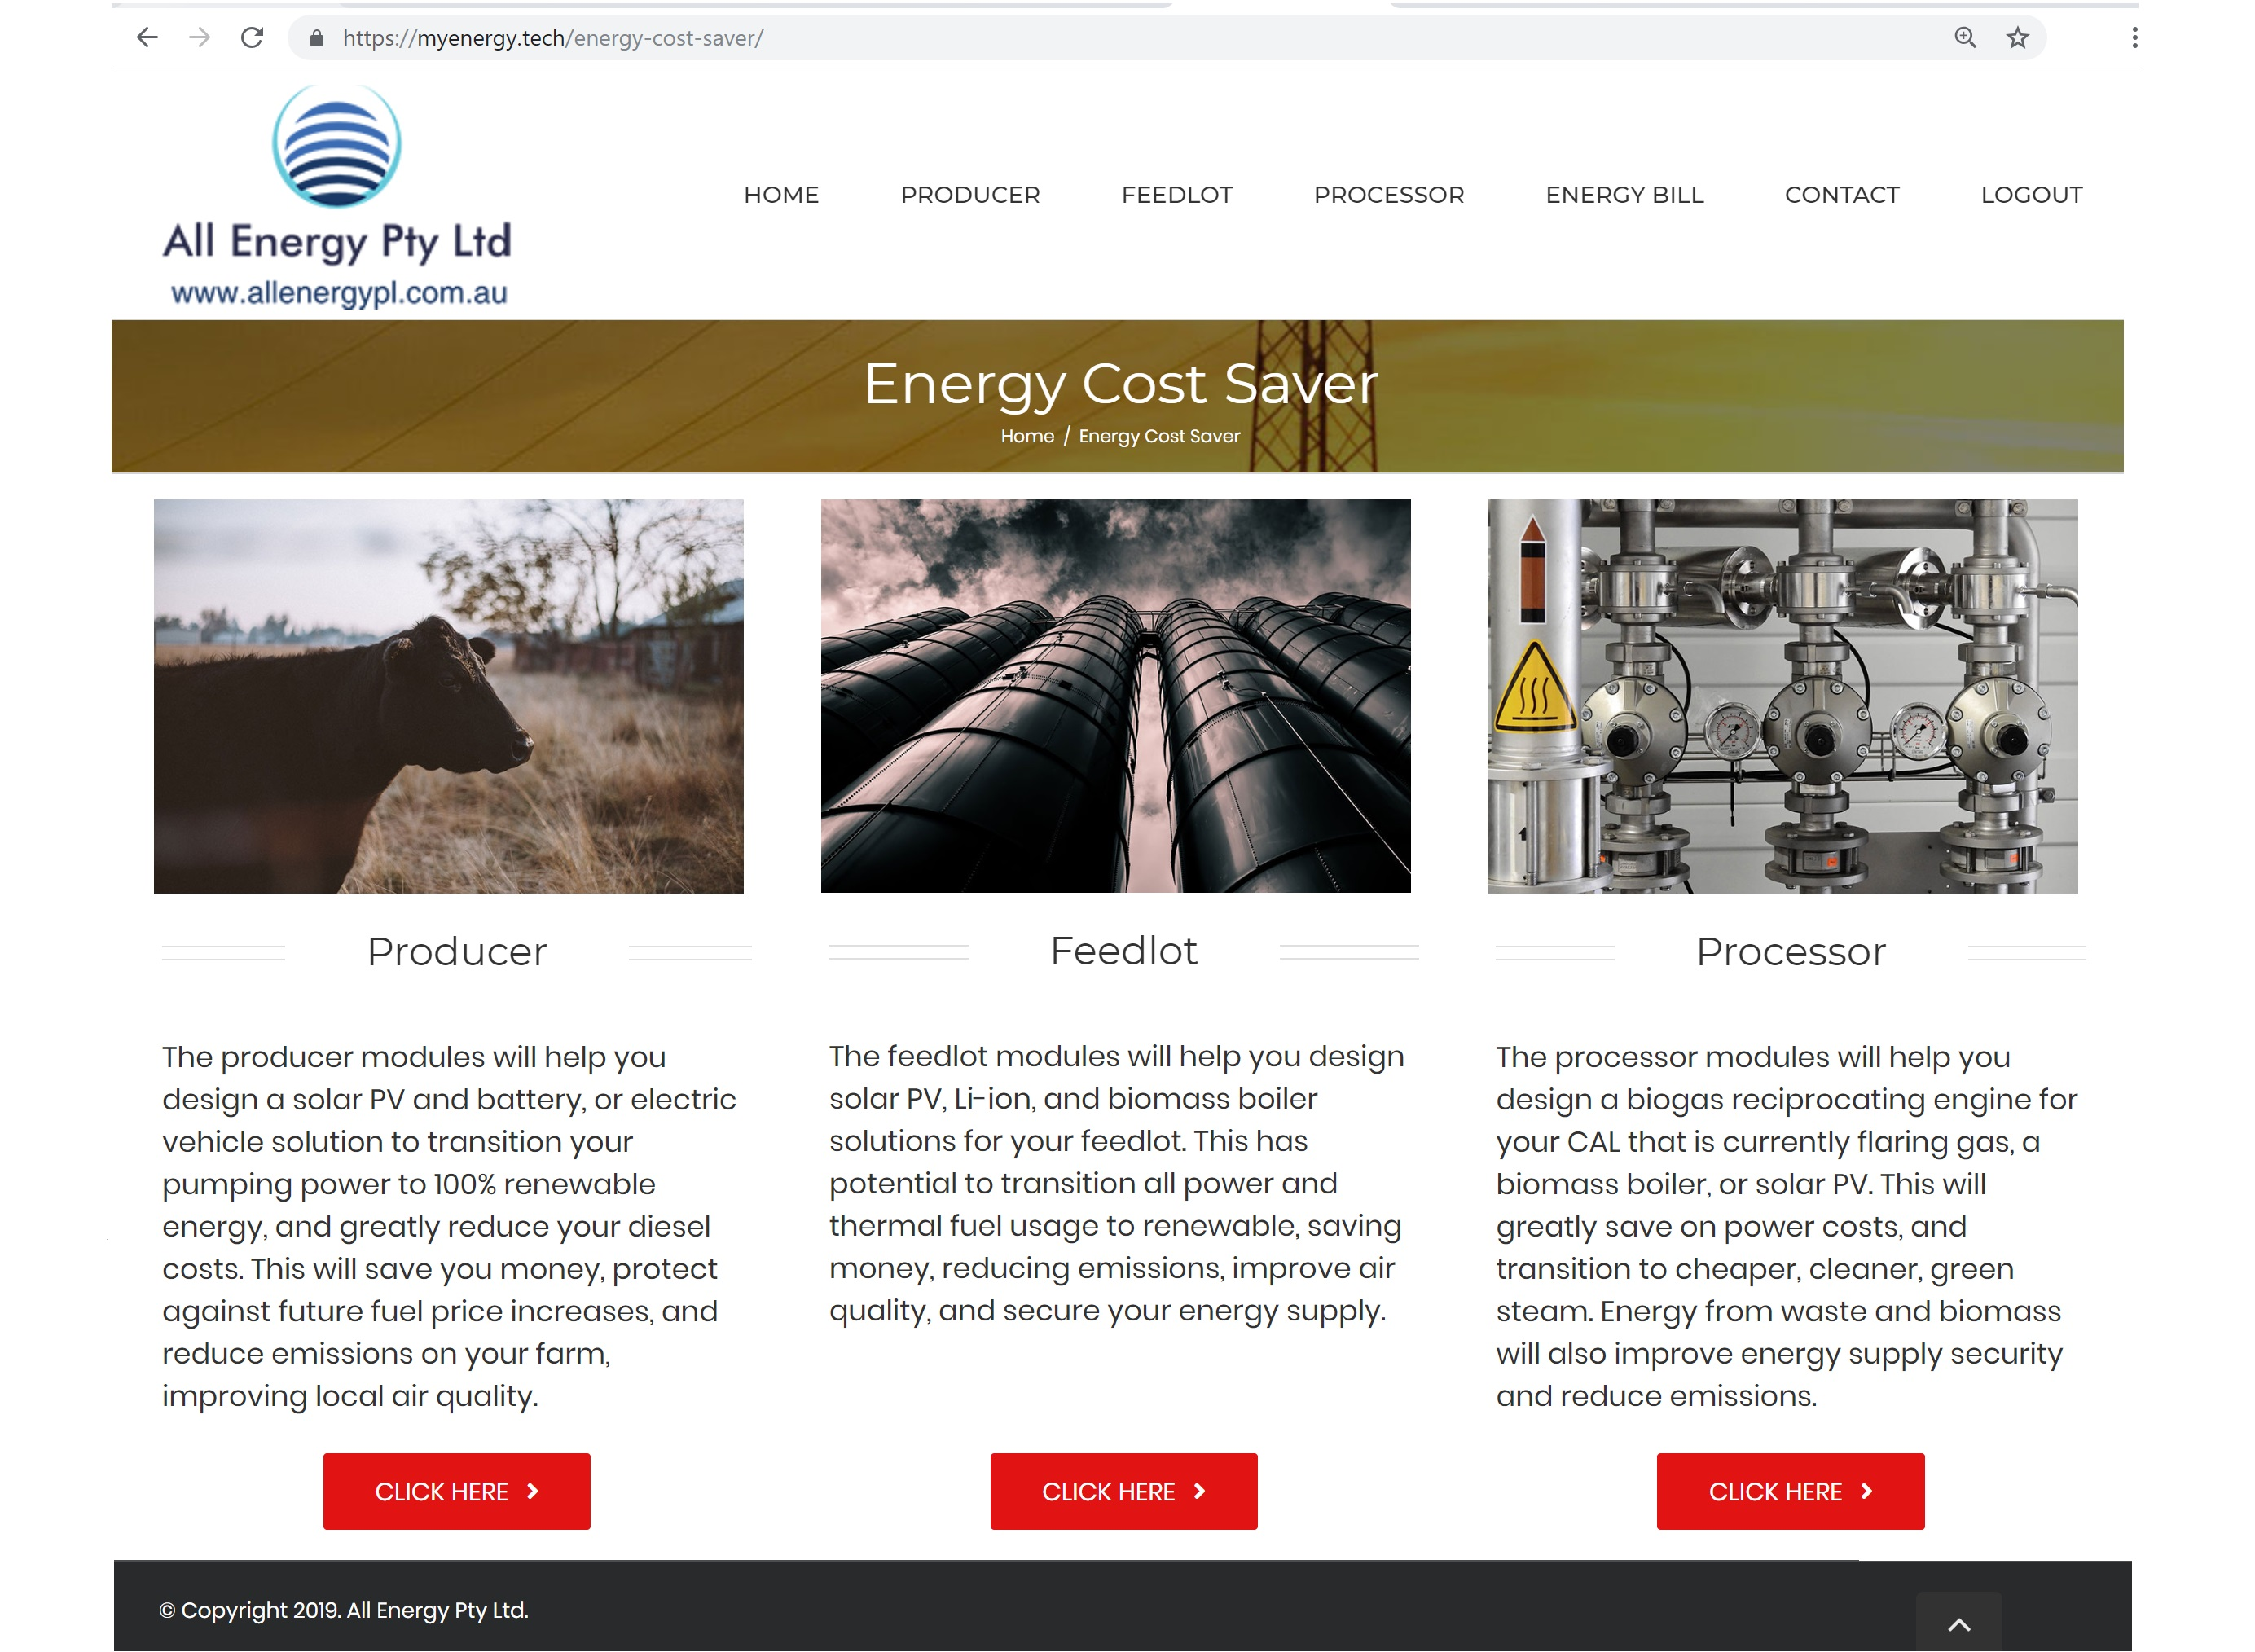 All Energy Pty Ltd